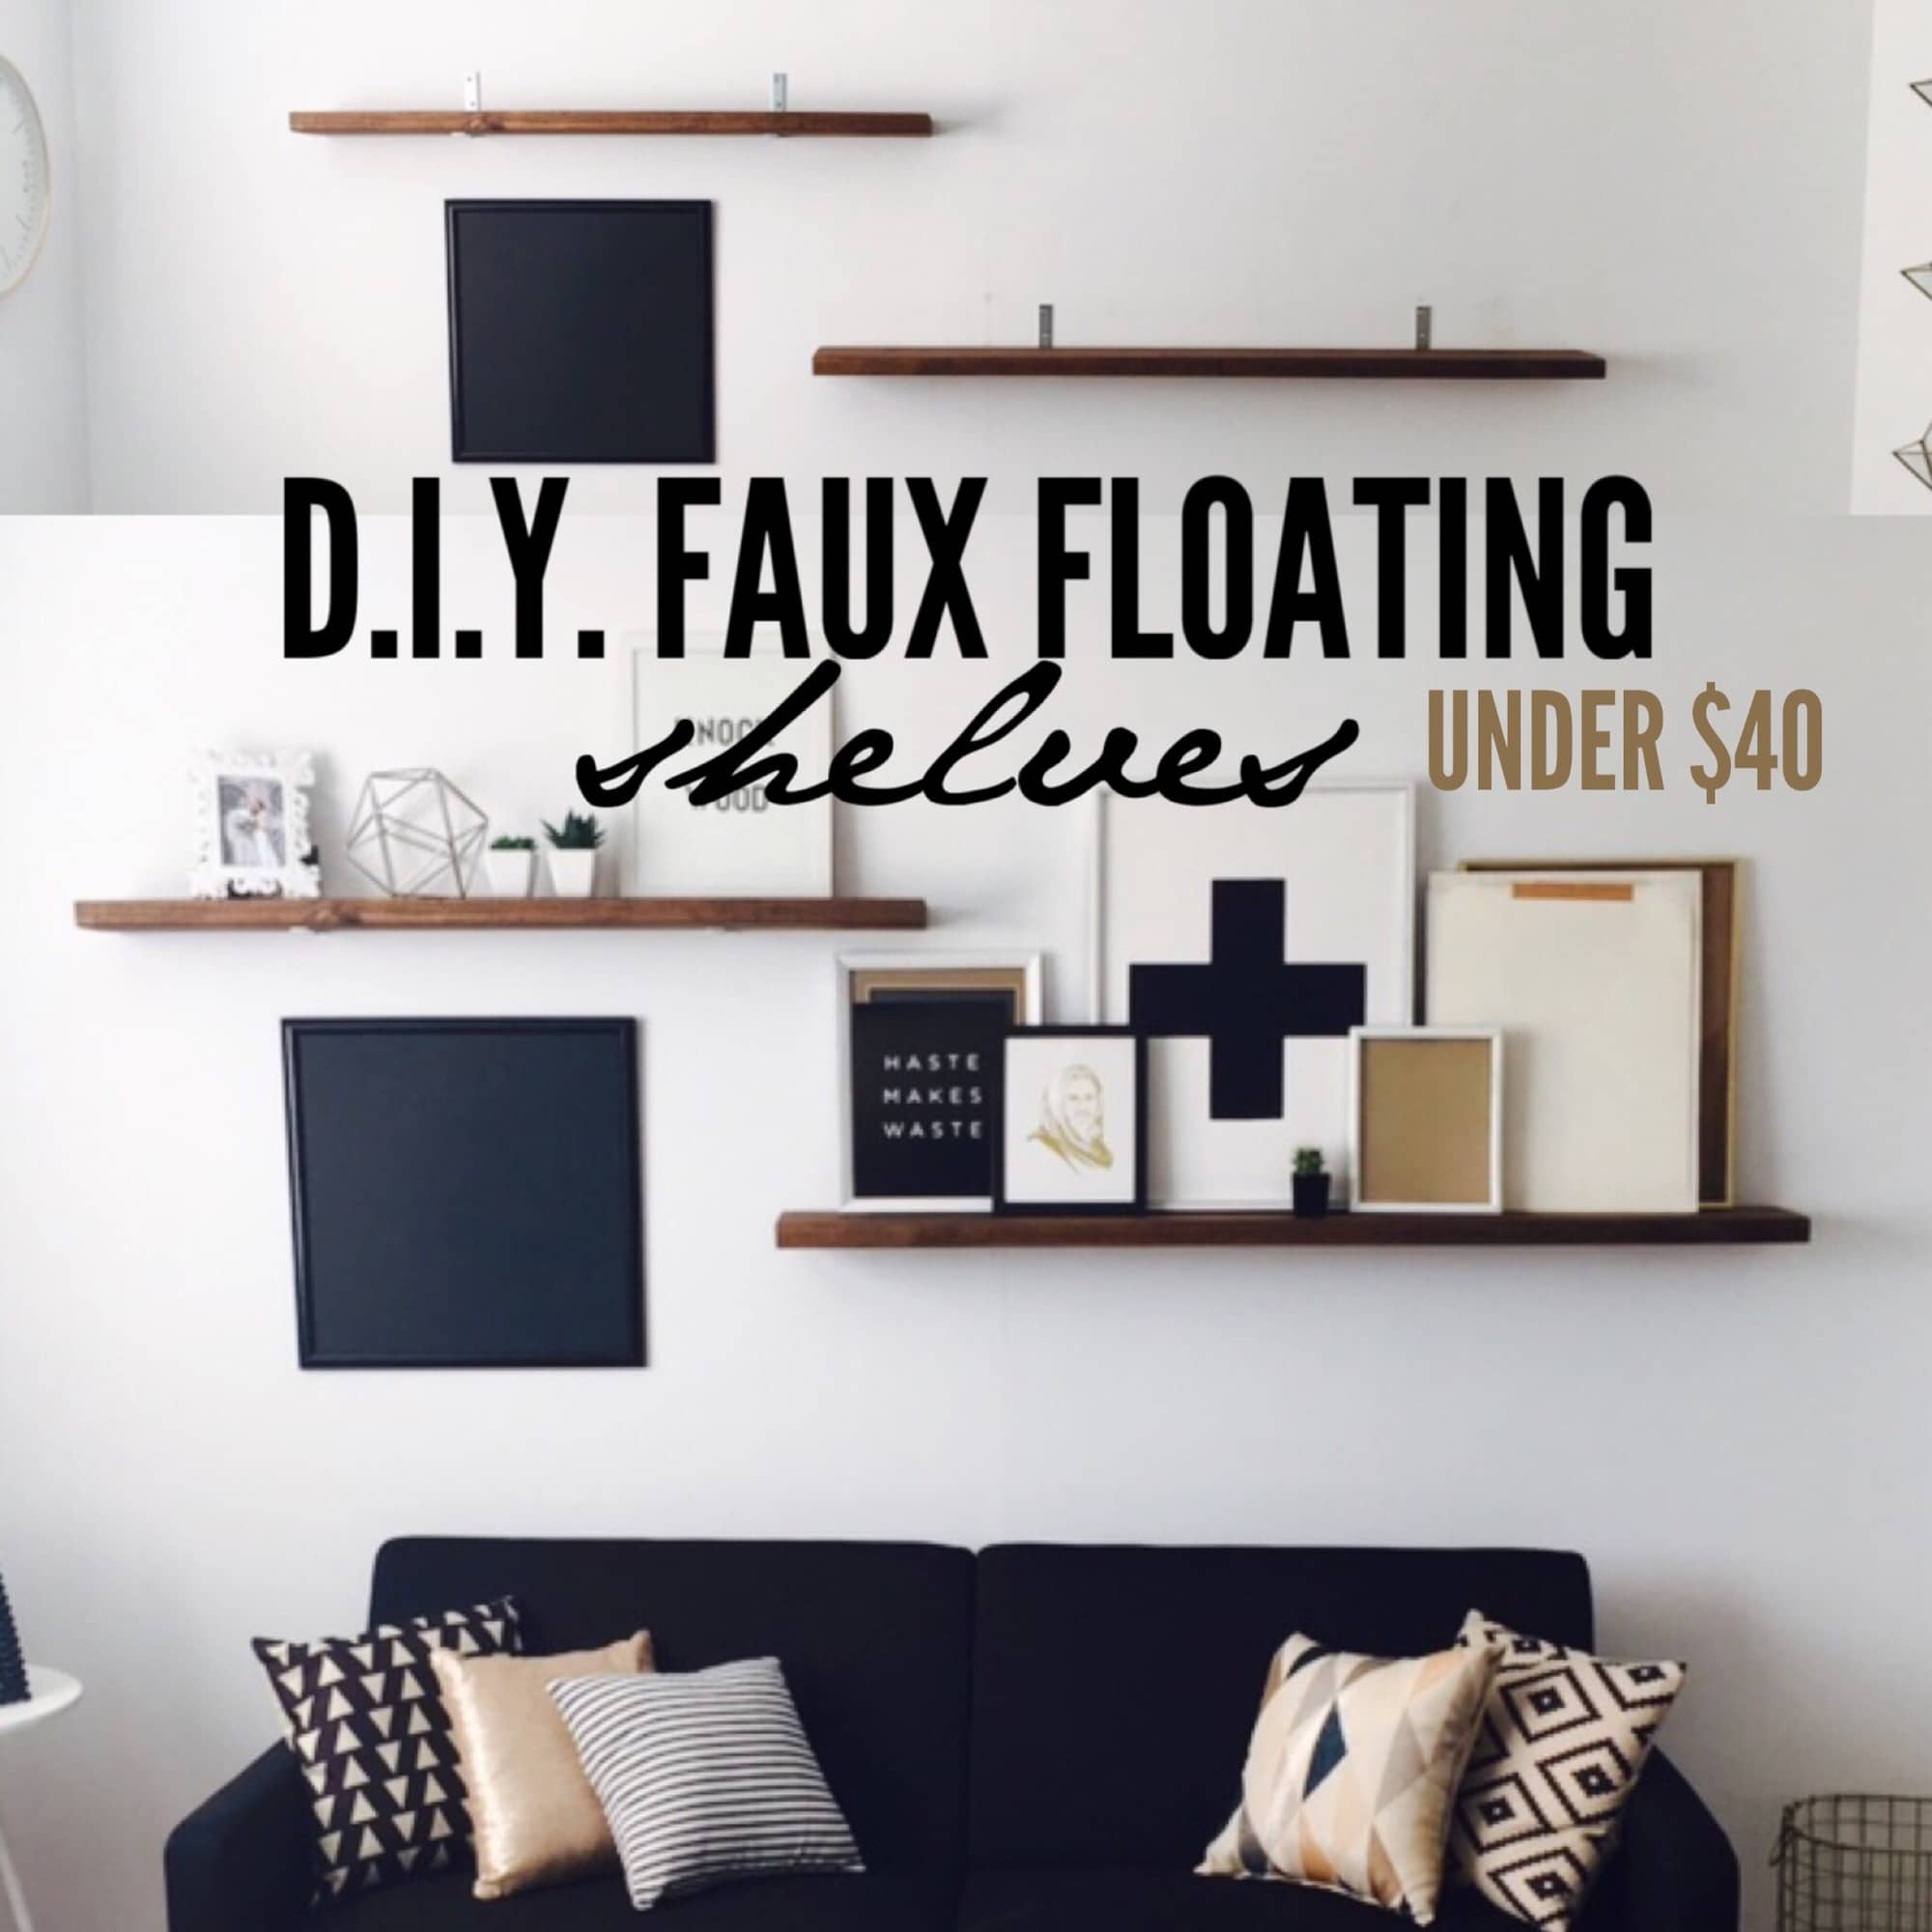 dit faux floating shelves under $40